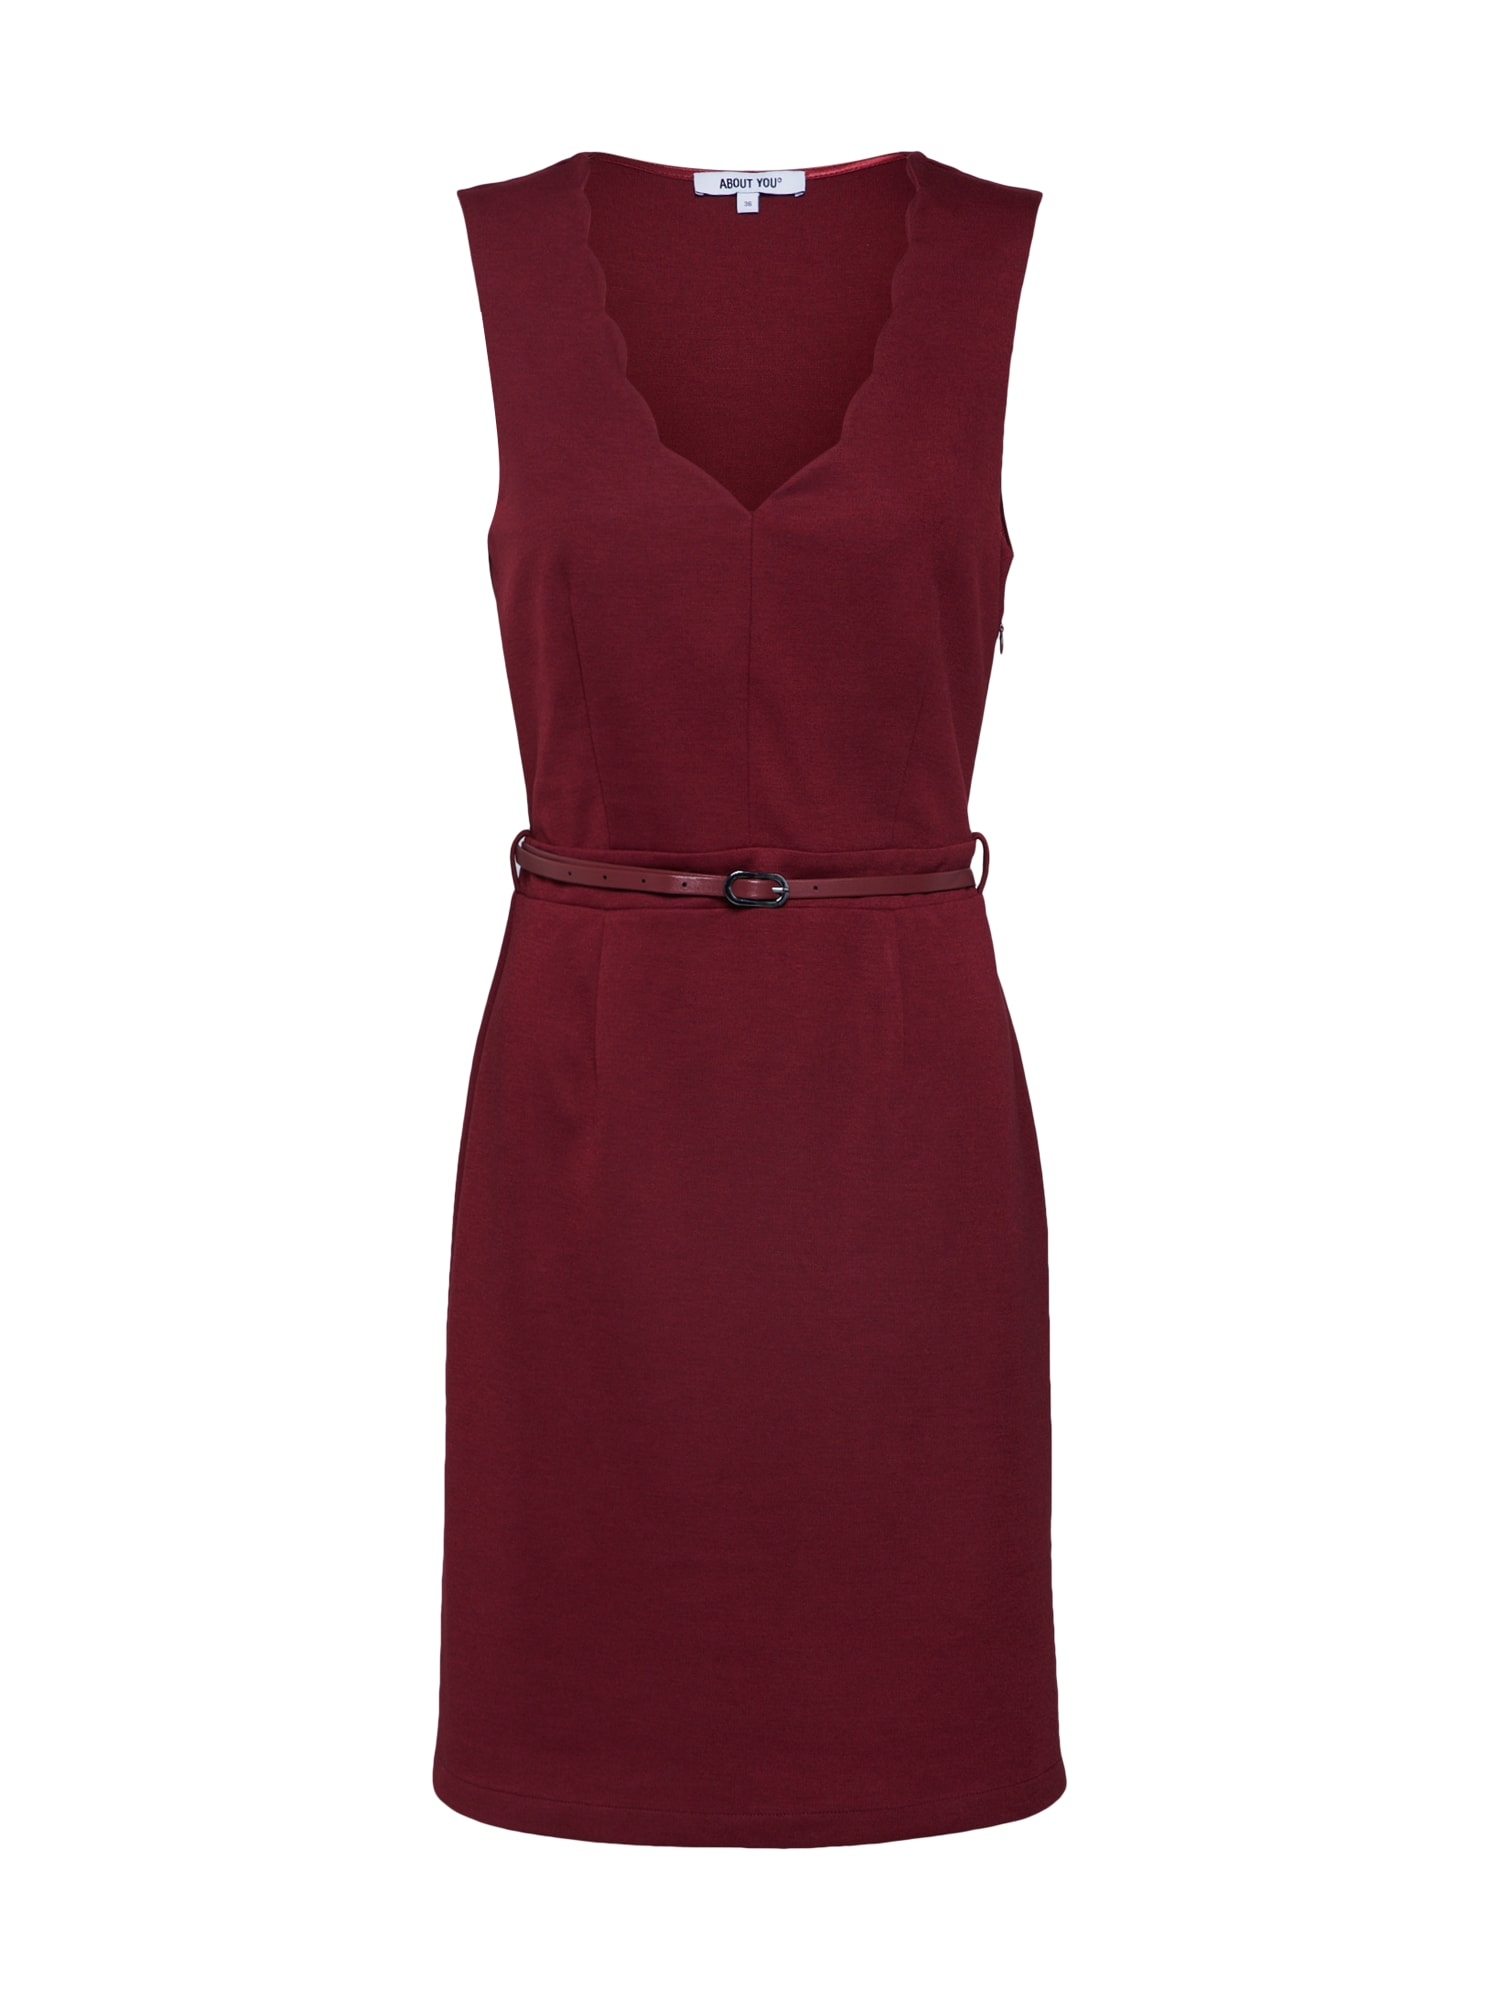 ABOUT YOU Jurk 'Michelle' bordeaux